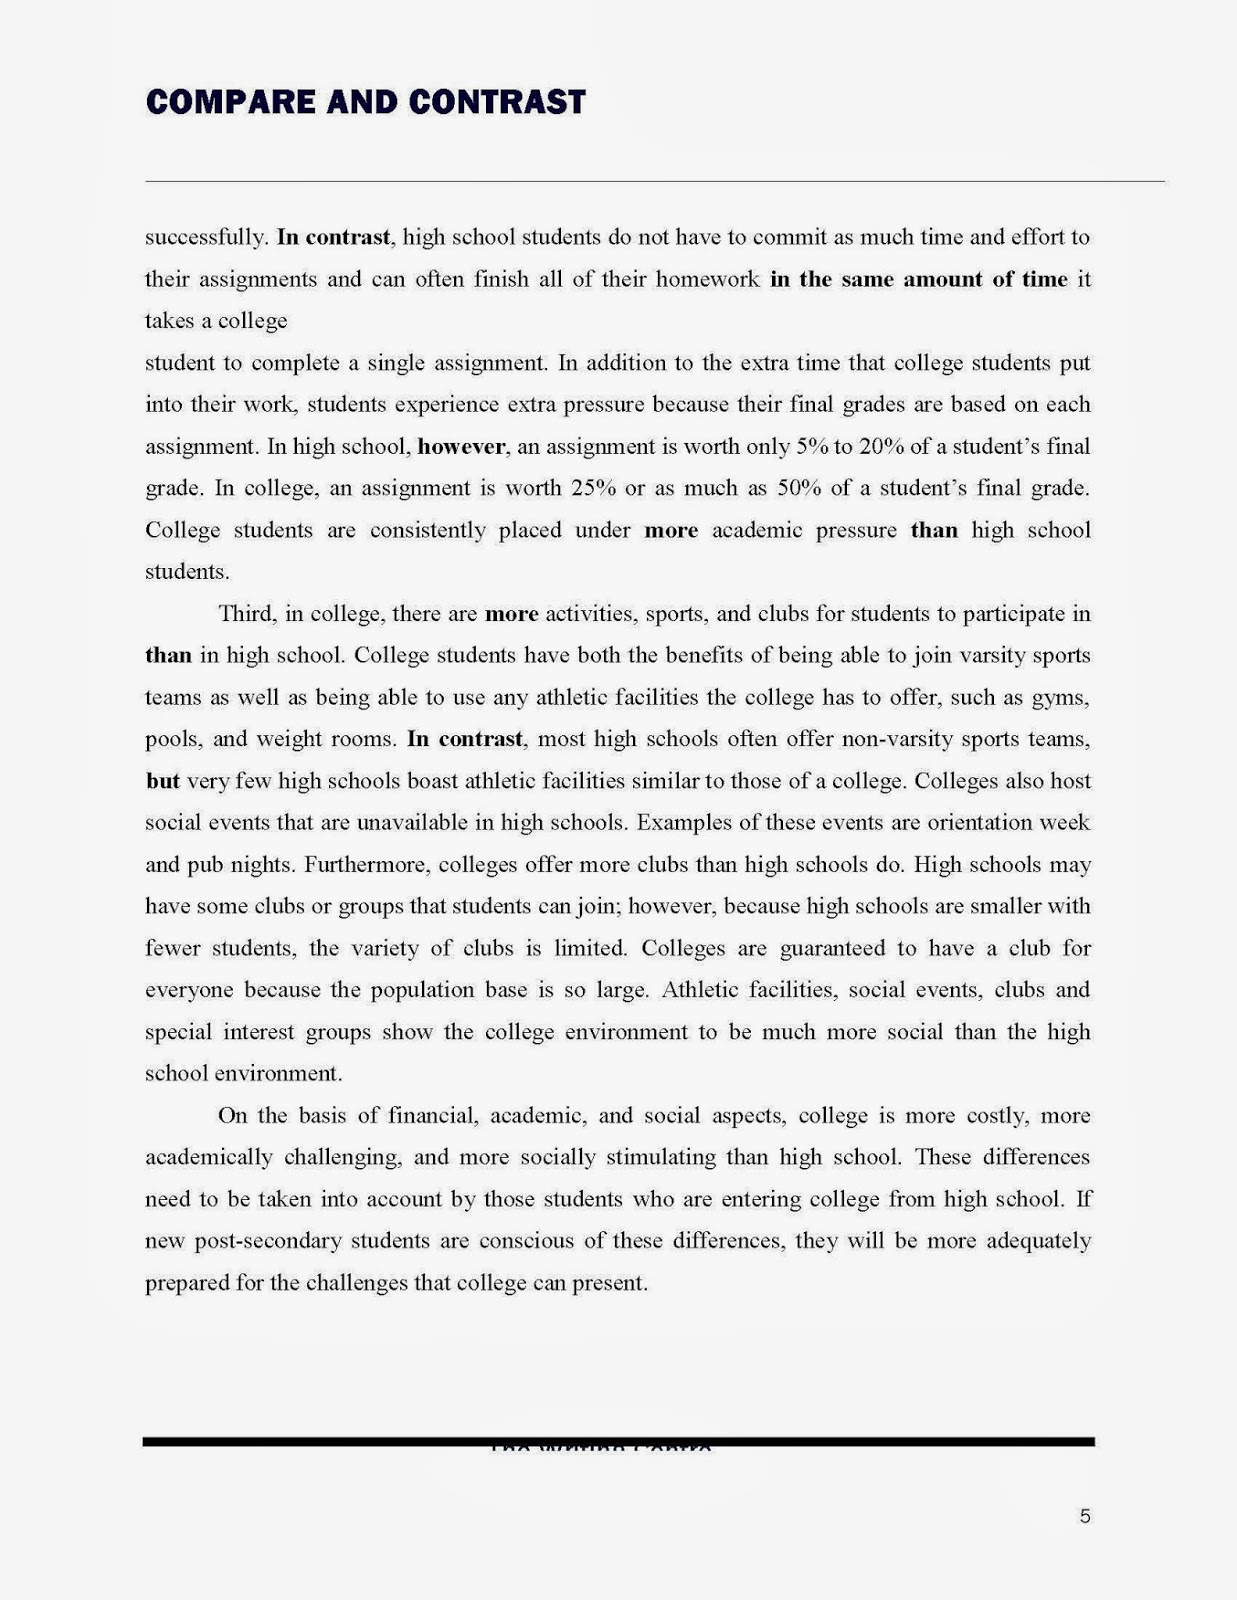 College Essay Thesis Essay With Thesis Statement Example With  High School Vs College Essay Compare And Contrast Differences Essay On The  Giver By Lois Lowry